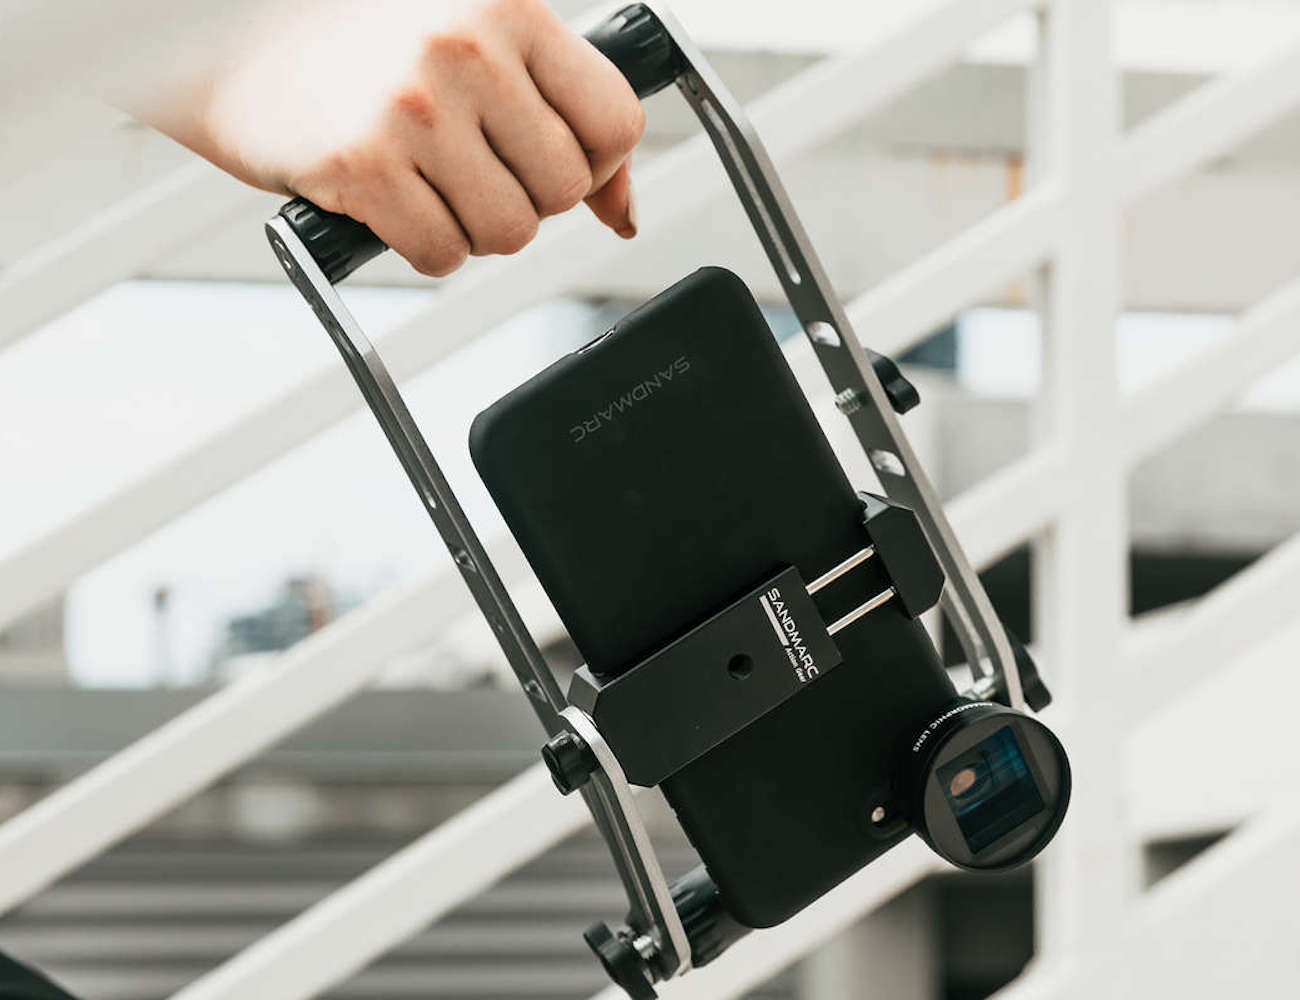 SANDMARC Film Rig Camera Mounting System stabilizes your footage